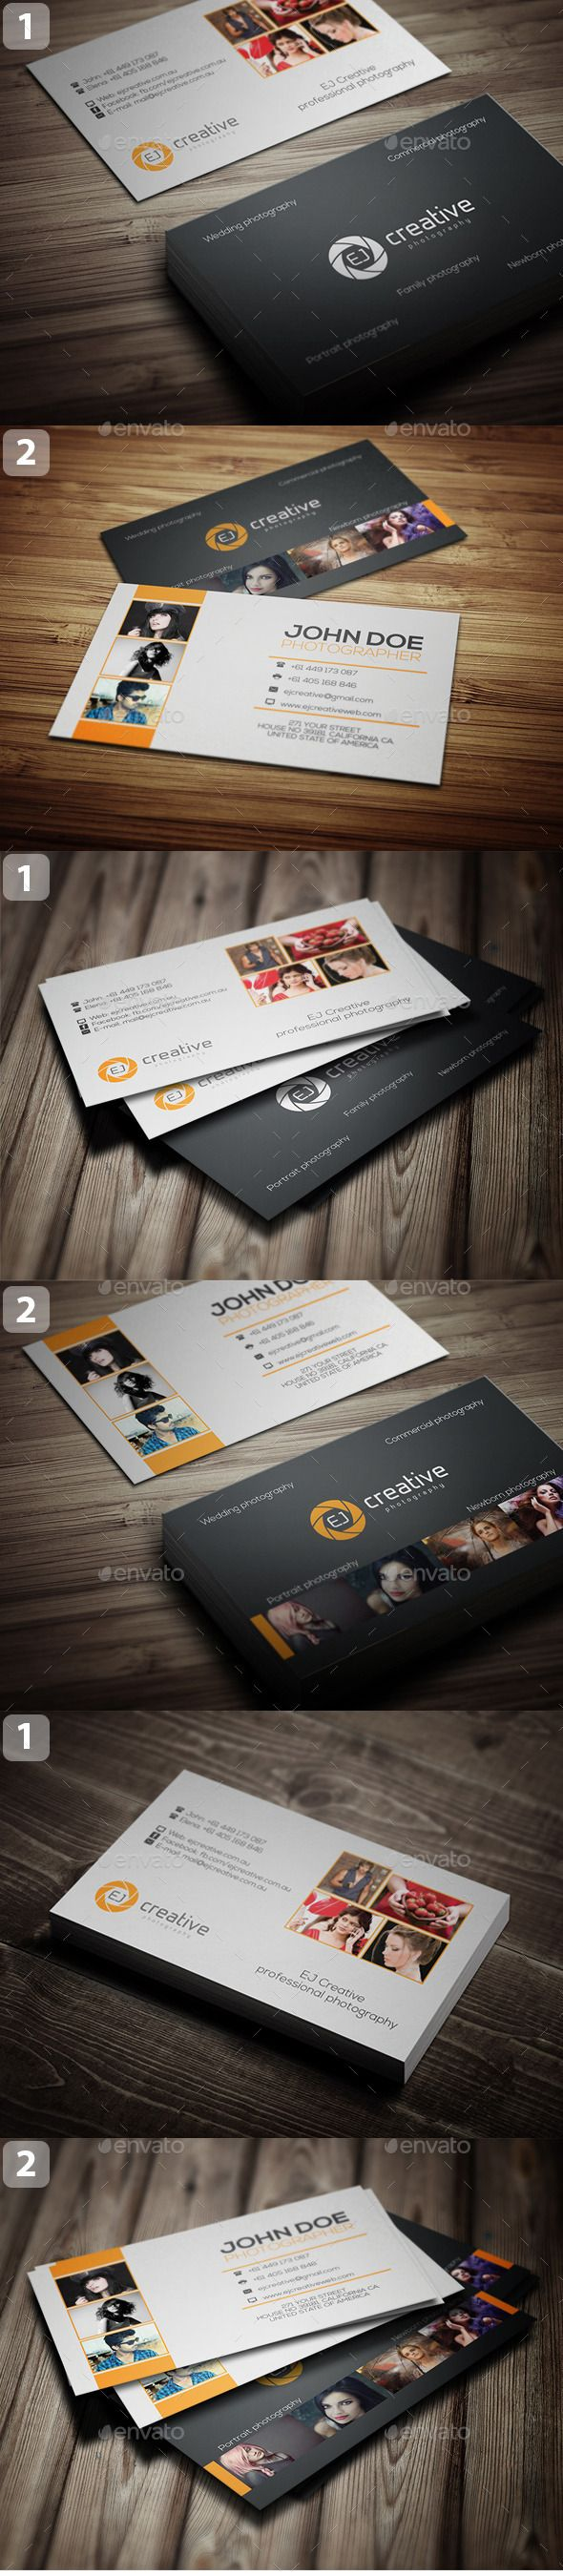 The 25 best photographer business cards ideas on pinterest photographer business card bundle reheart